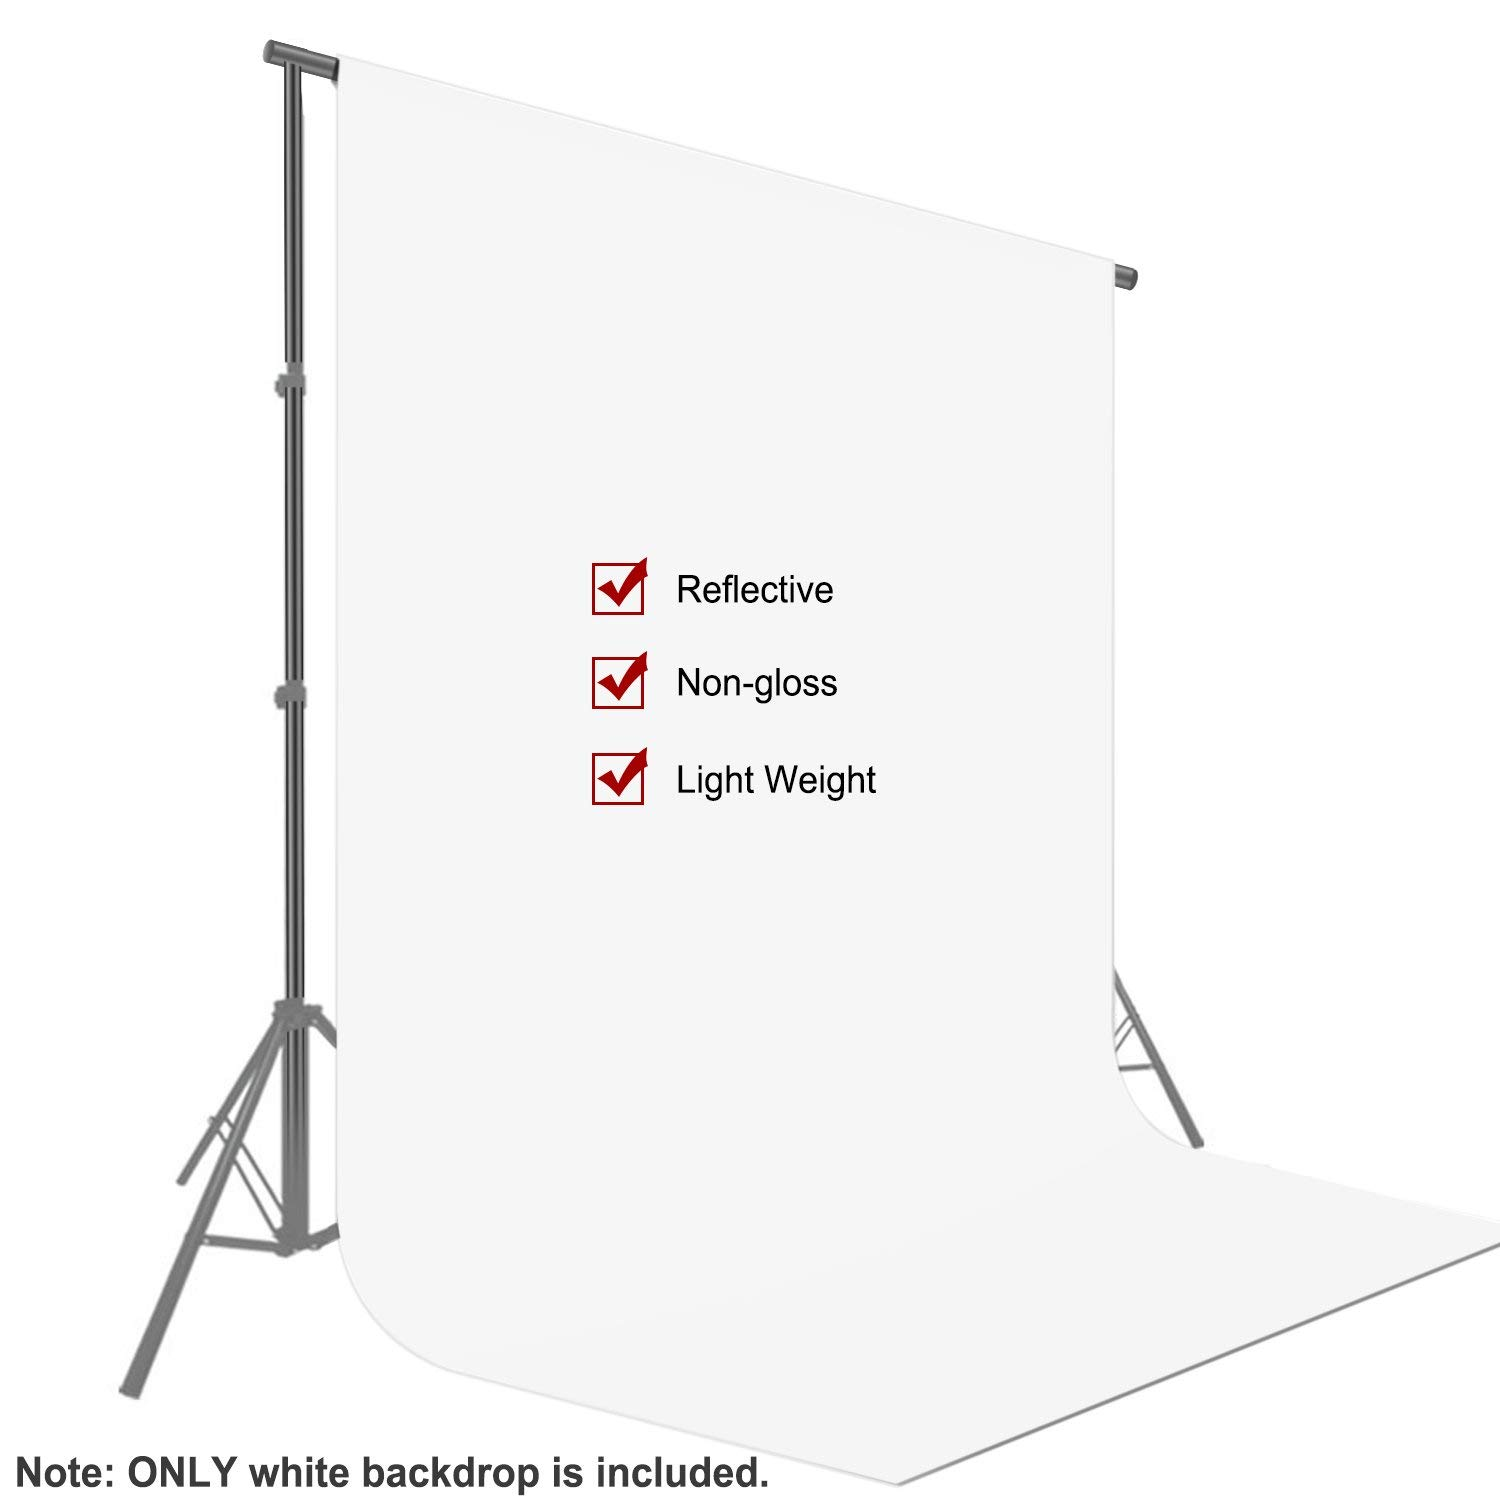 Neewer 10 x 12FT / 3 x 3.6M PRO Photo Studio Fabric Collapsible Backdrop Background for Photography,Video and Televison (Background ONLY) - White by Neewer (Image #2)